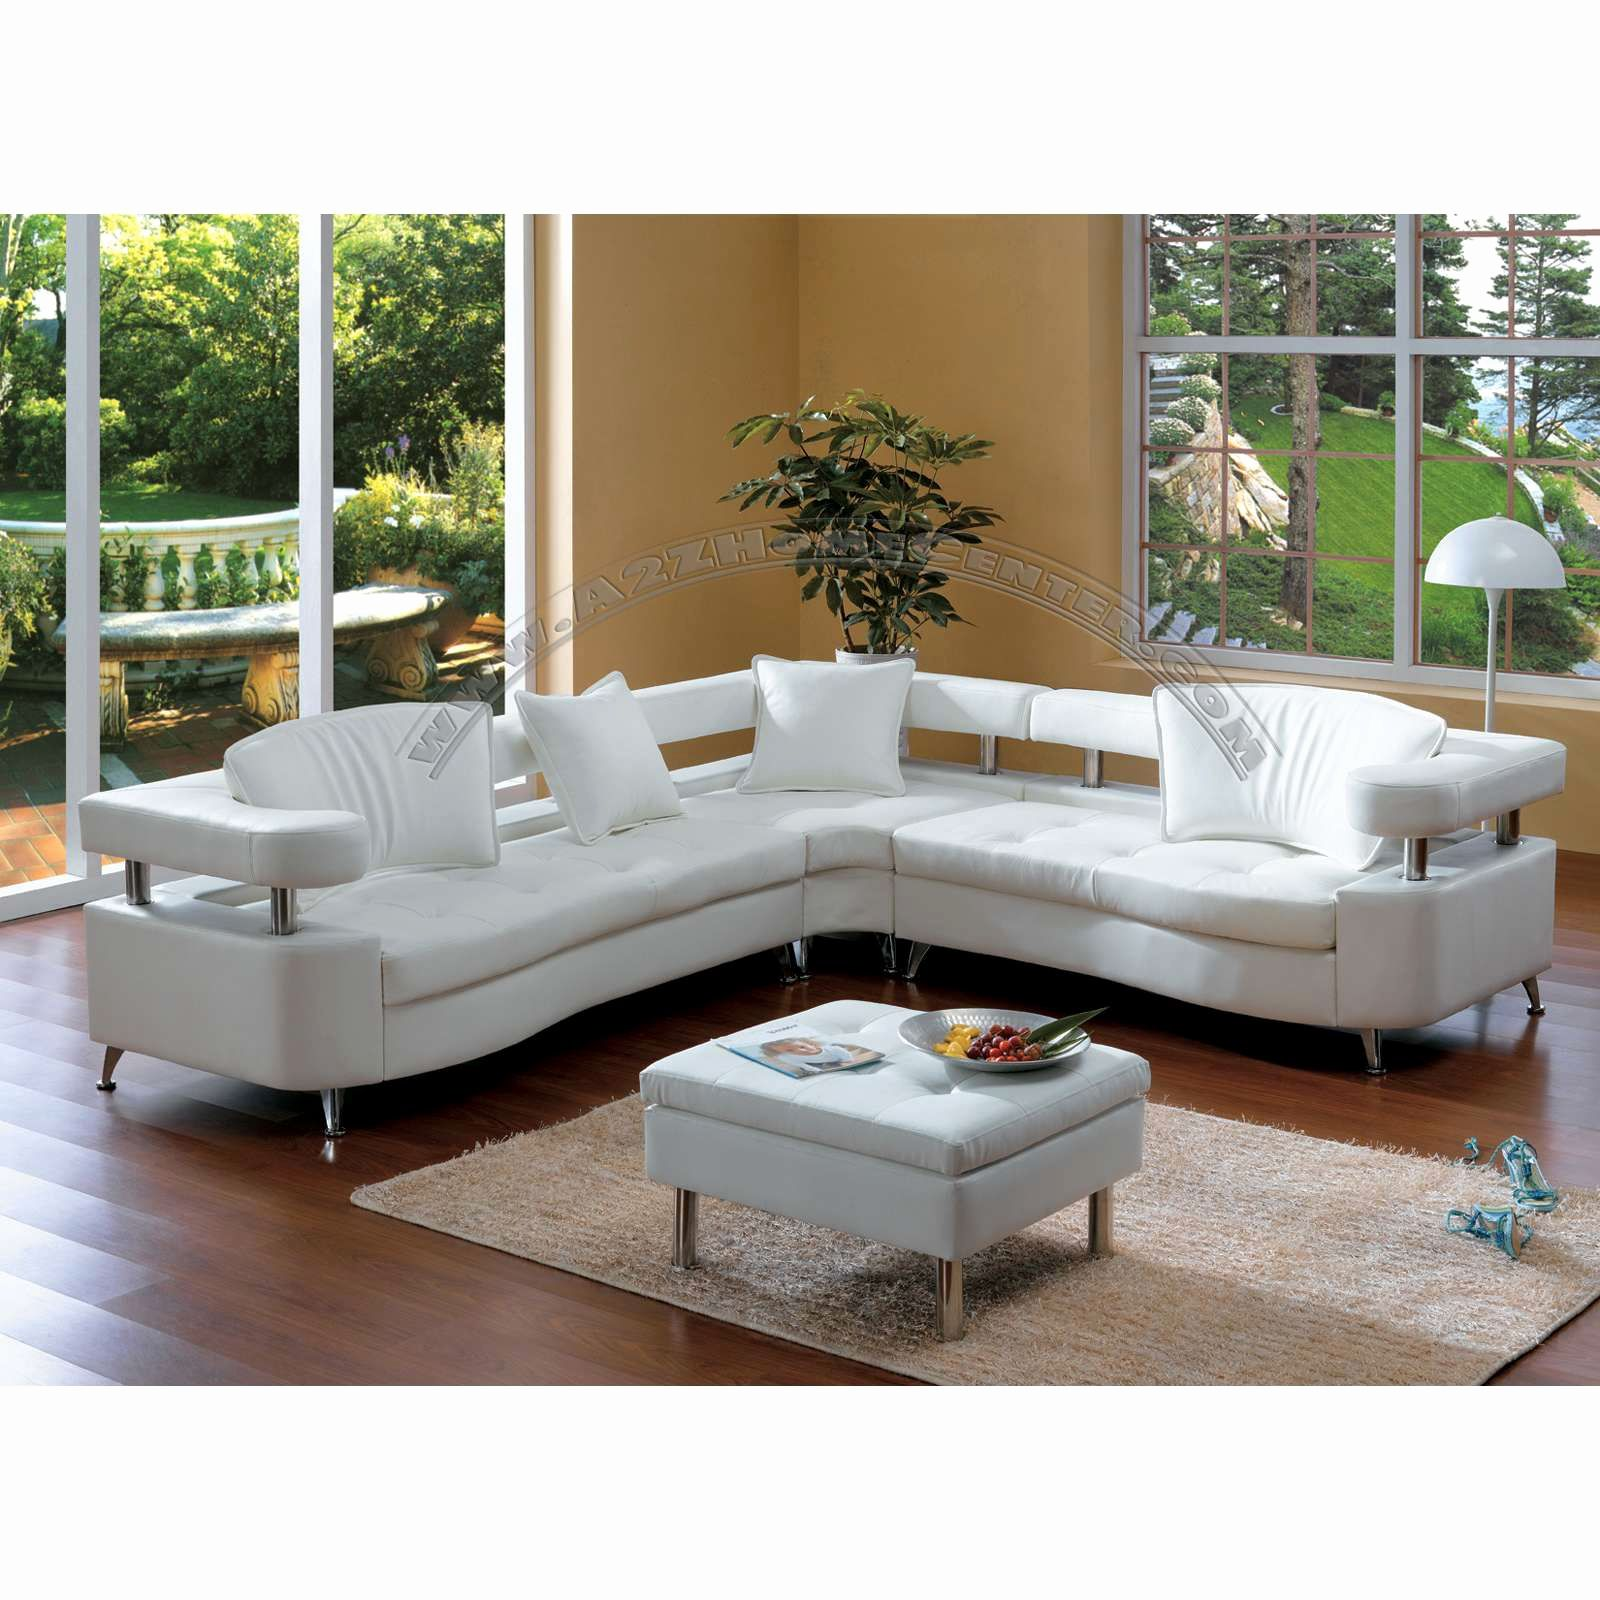 Beautiful Designer Sectional Sofas Photos Designer Sectional Sofas Elegant Fresh Designer Sofas Glasgow 4 Modern Sofa Sectional Modern White Sofa Modern Lounge